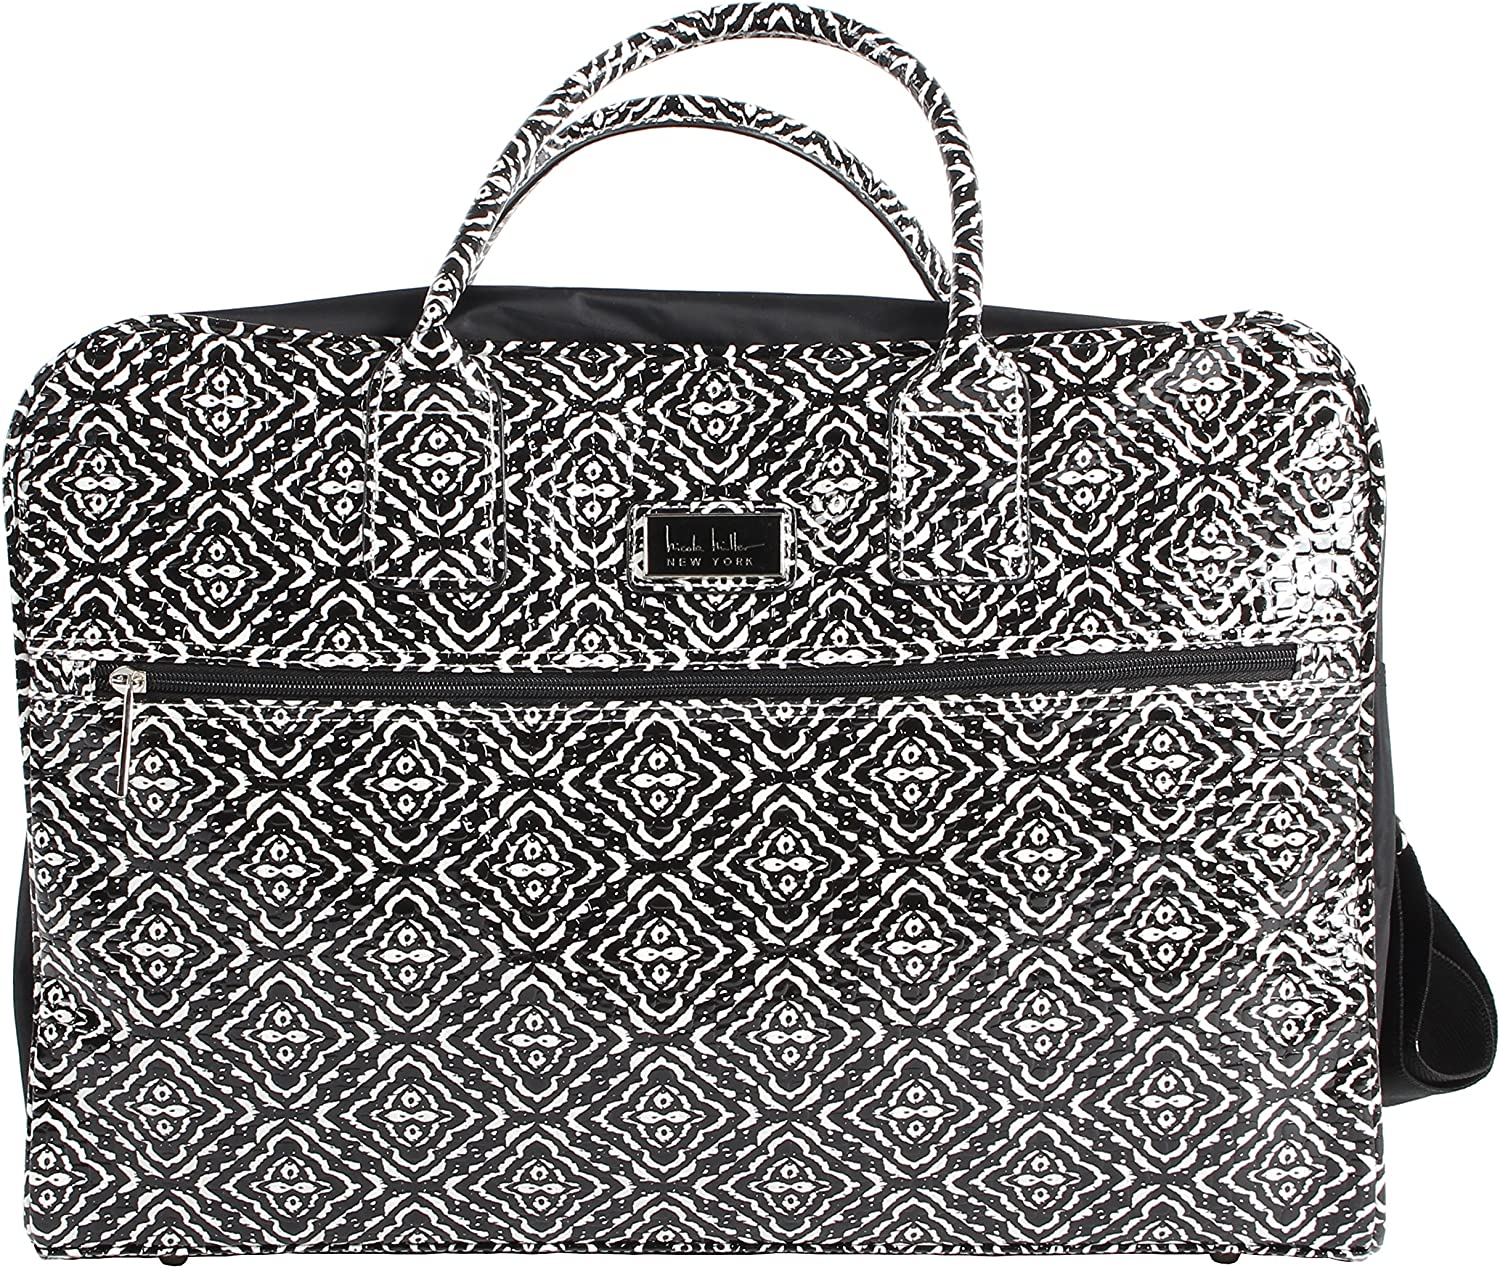 Nicole Miller Teagan 20 Carry On Satchel